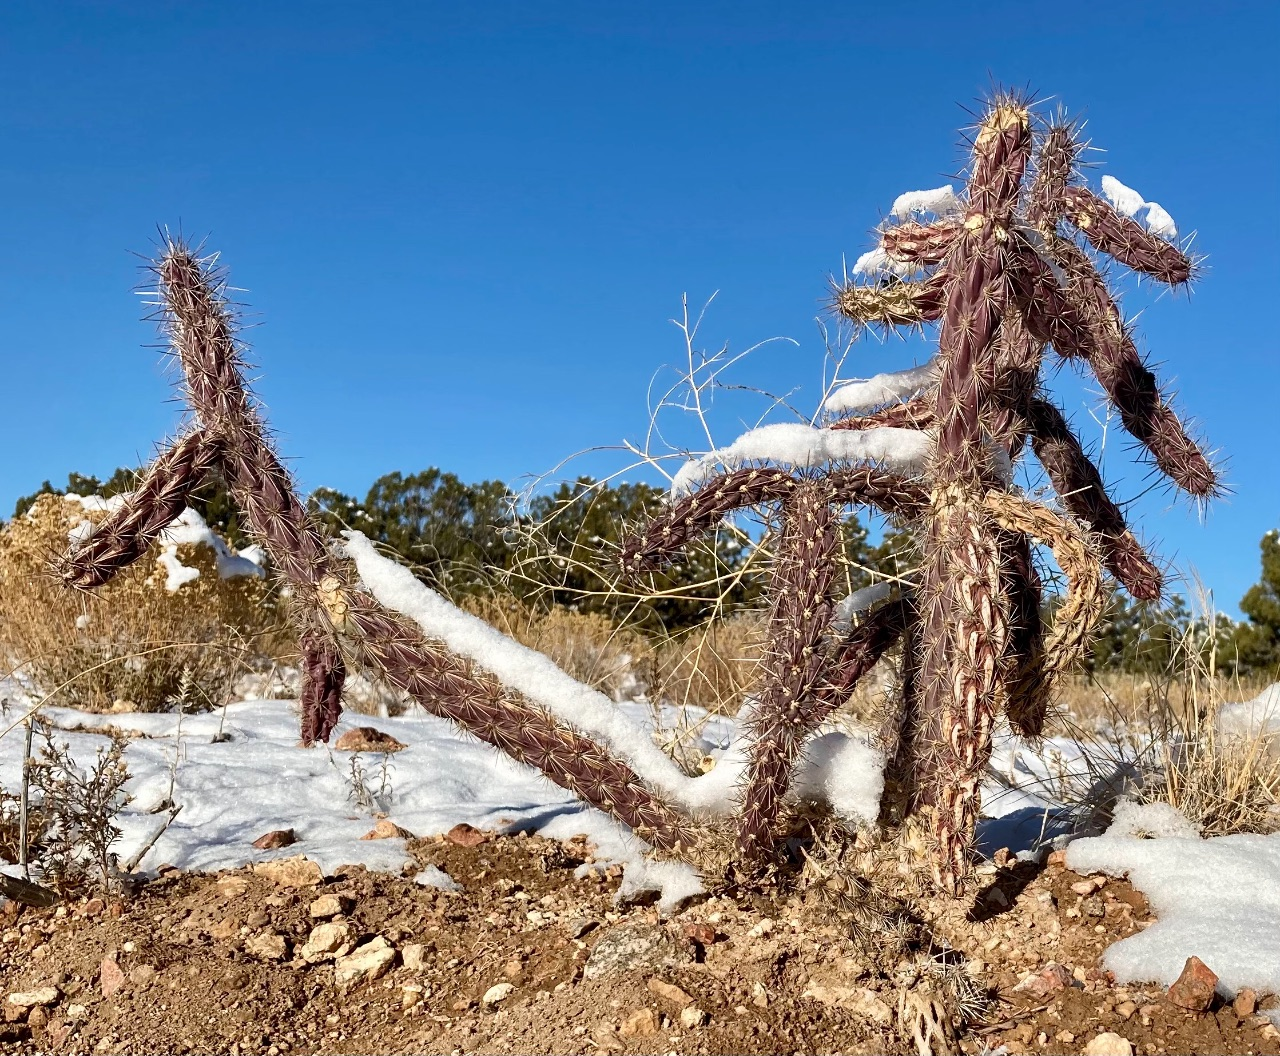 A cholla cactus in its winter purple, silhouetted against a clear blue sky, with snow on the arms.